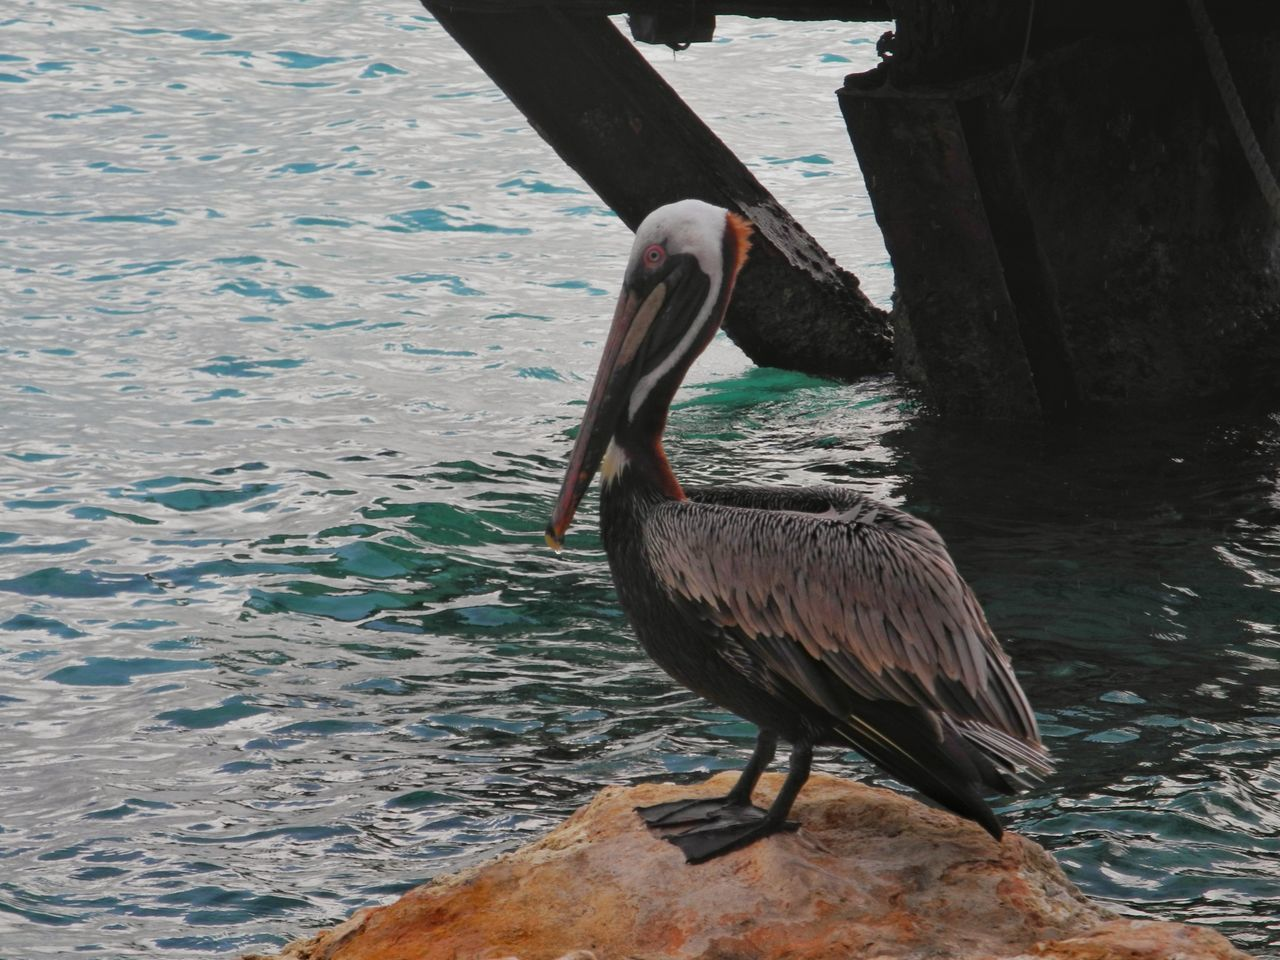 Animal Wildlife Animal Themes Bird Water One Animal Wink Animals In The Wild Sea Pelican Beach Outdoors No People Nature Snbcuracao (c) 2016 Shangita Bose All Rights Reserved From My Point Of View Curacao Travel Destinations Pensive Lonesome Animals In The Wild Beauty In Nature Horizon Over Water